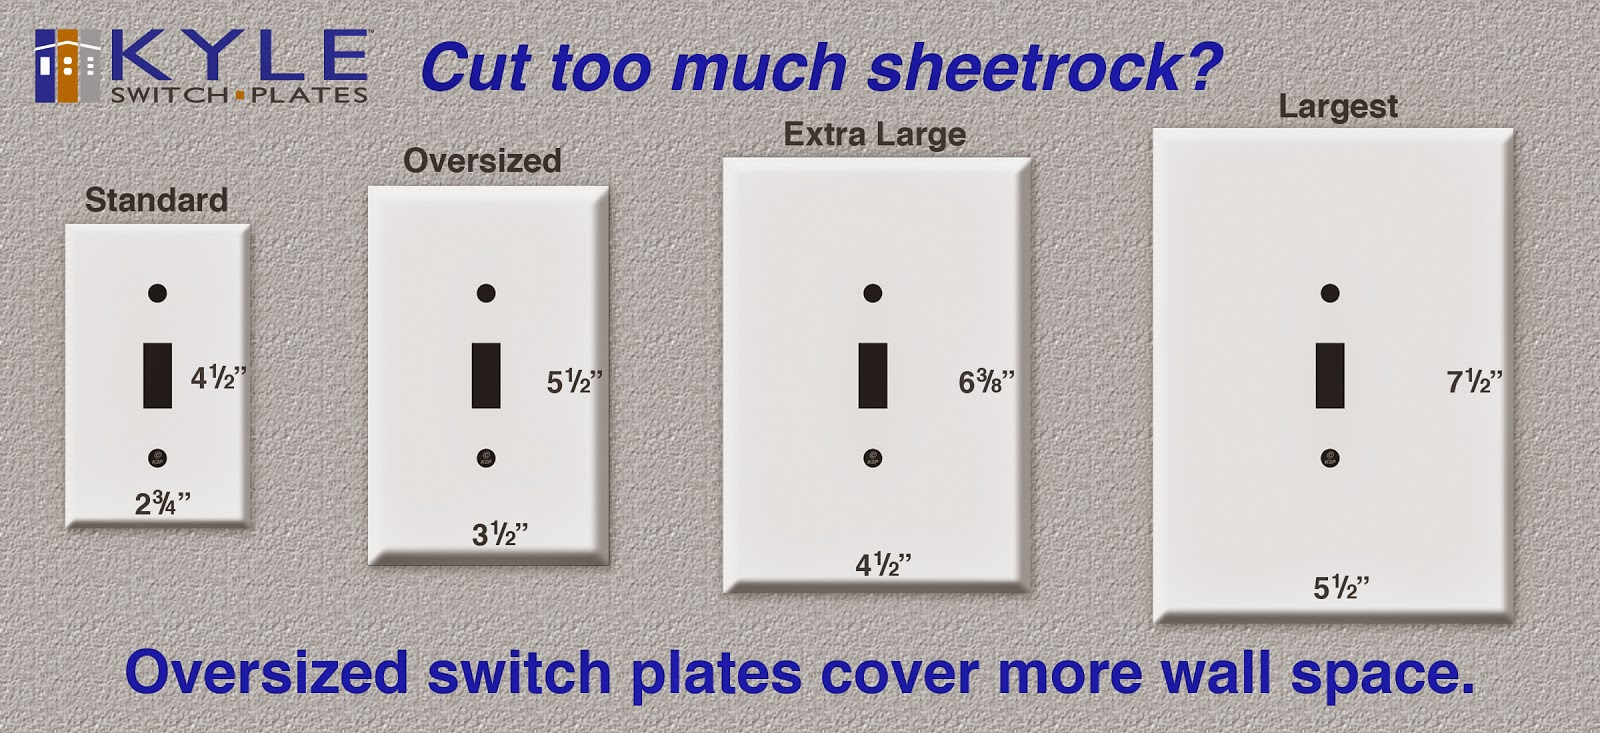 You've never - and I mean NEVER - seen a switch plate THIS BIG before!